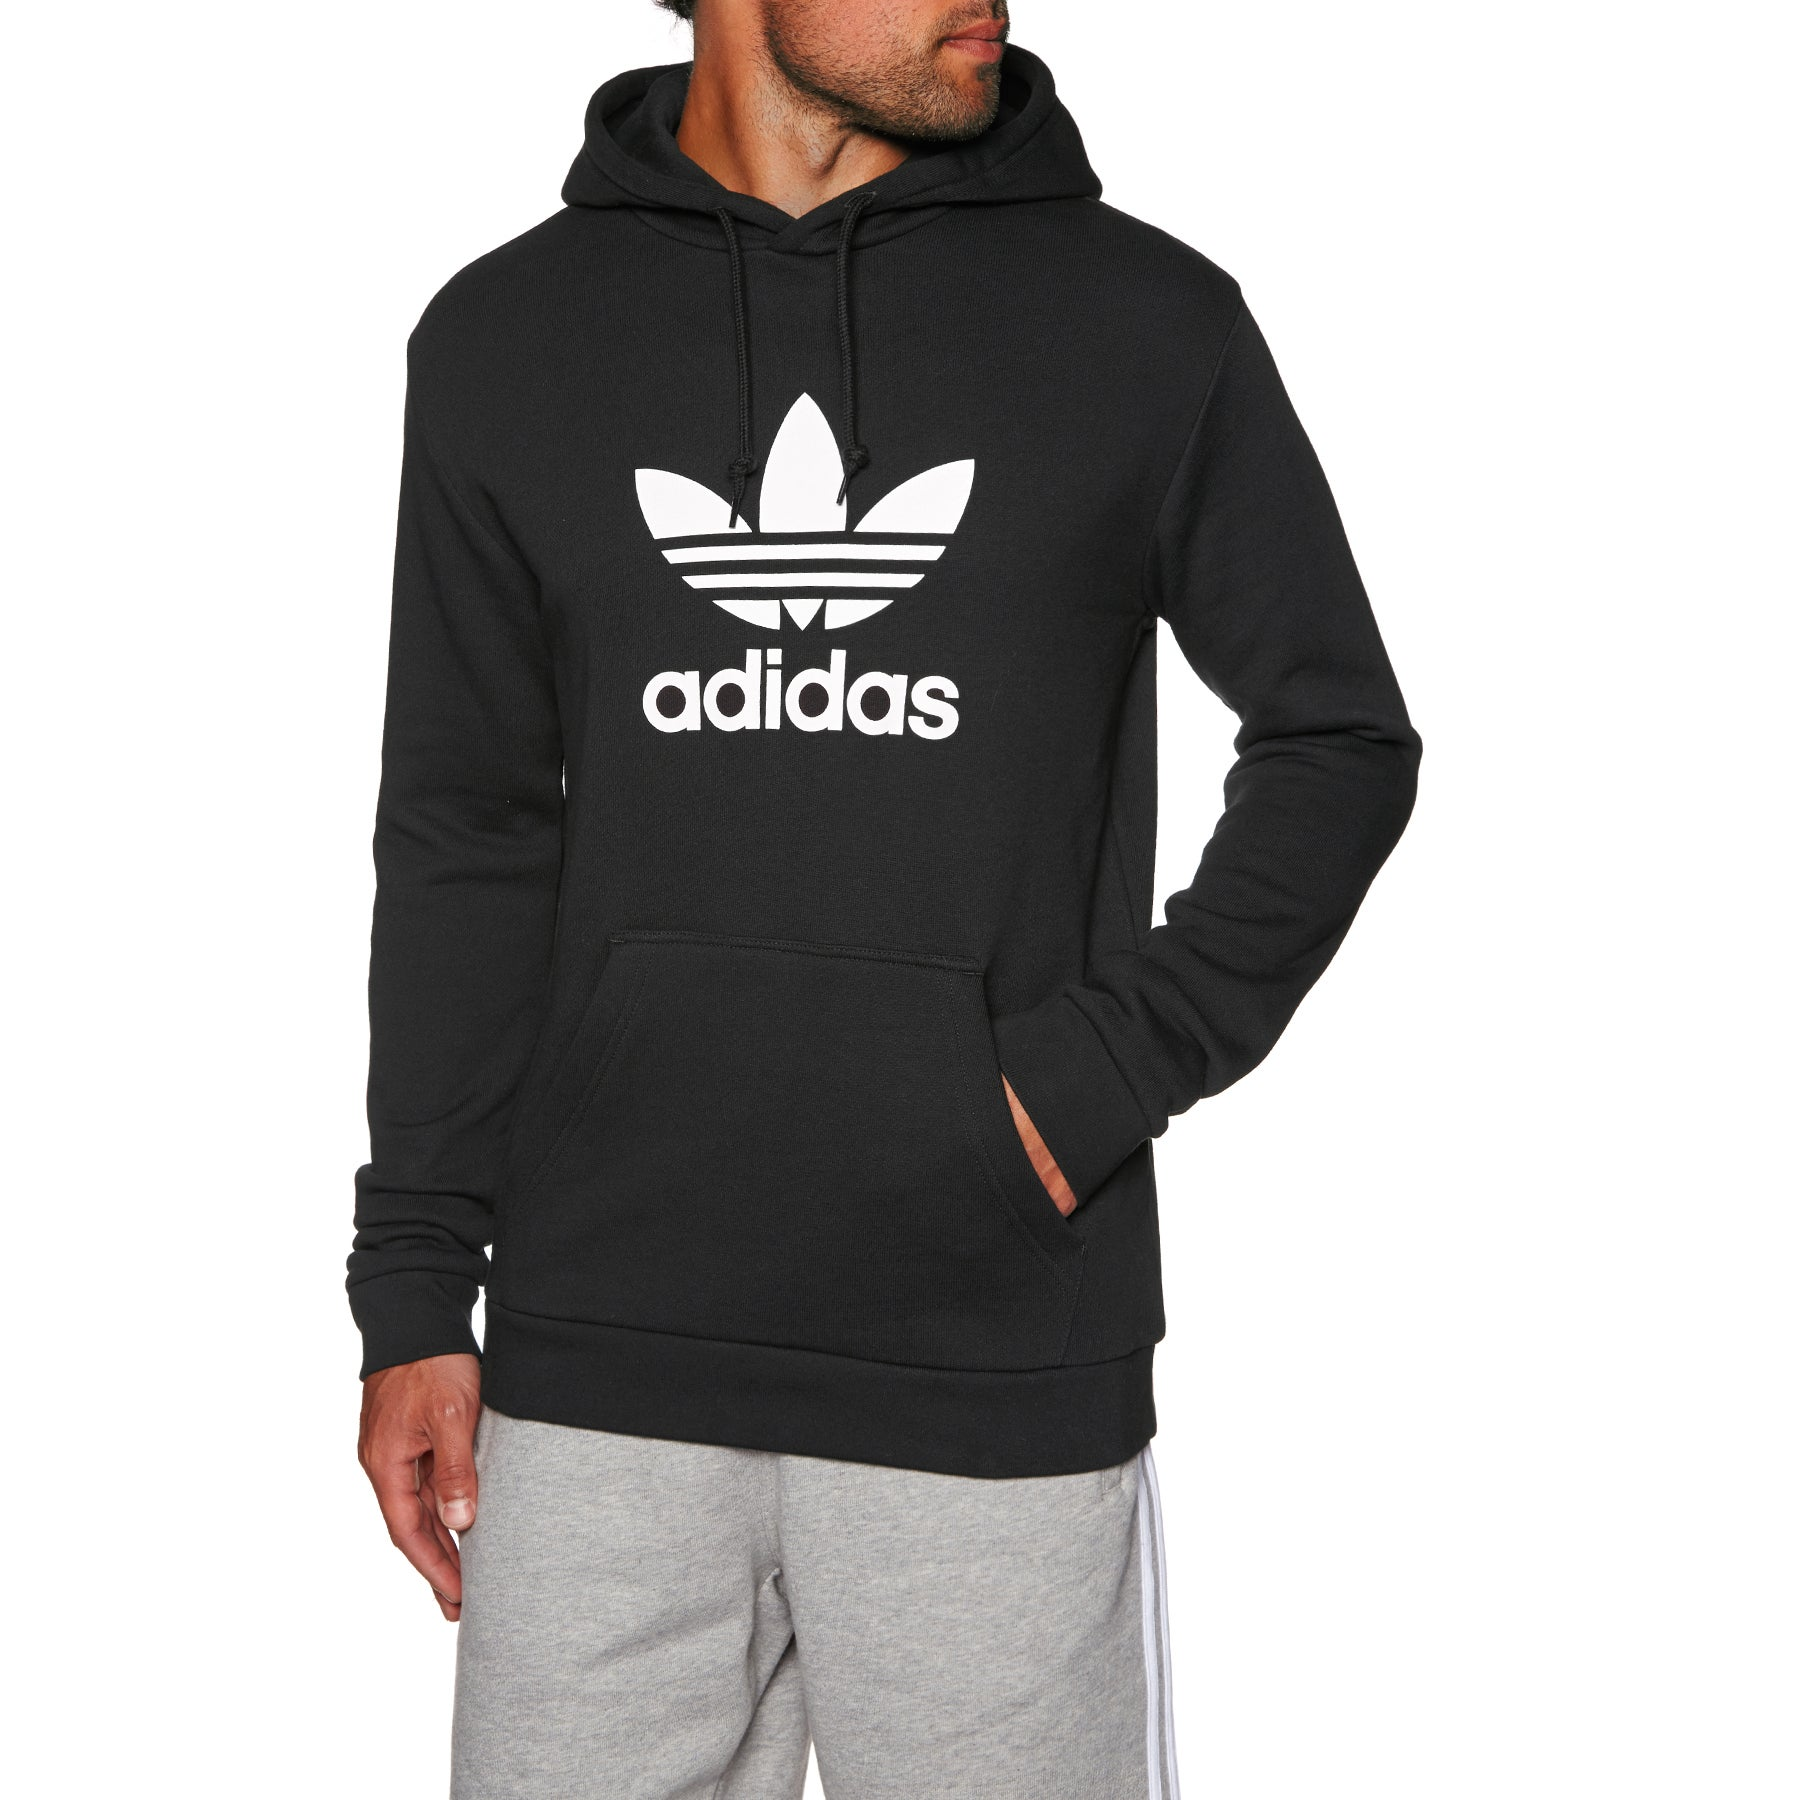 cda0e2719e4d Adidas Originals Trefoil Pullover Hoody available from Surfdome